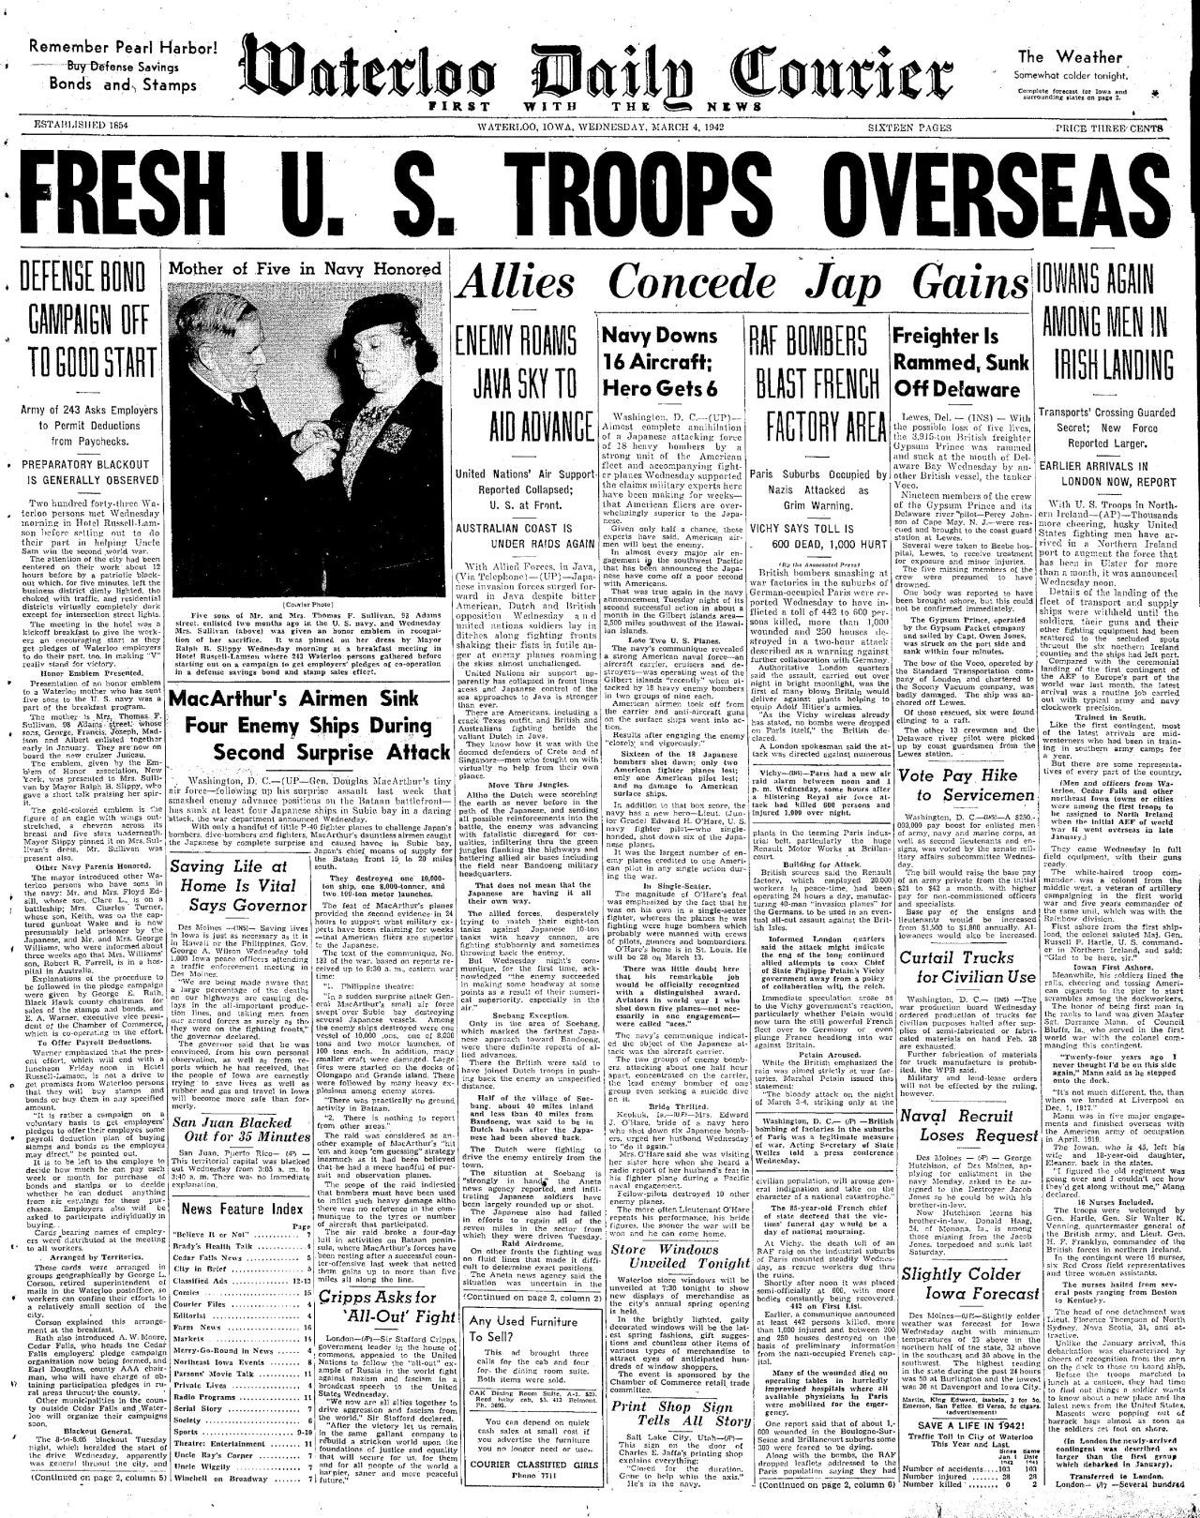 Courier March 4, 1942